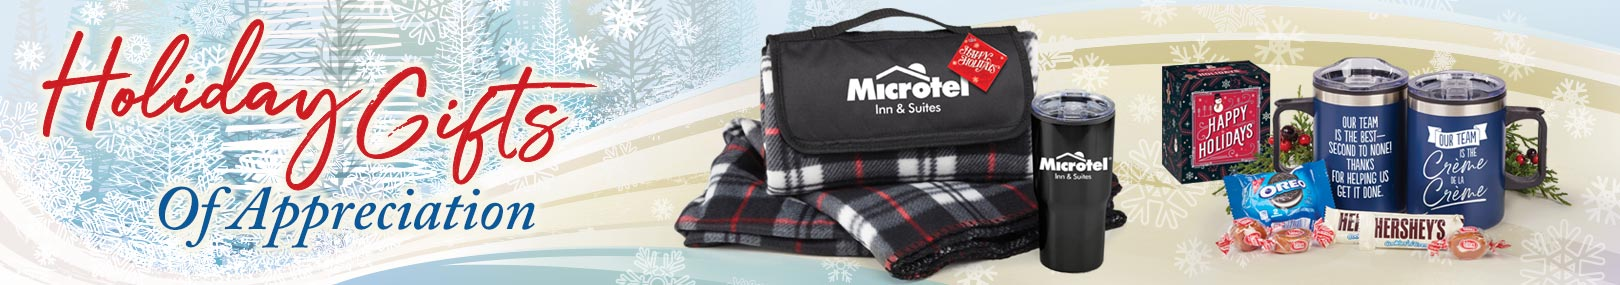 Holiday essentials from Positive Promotions